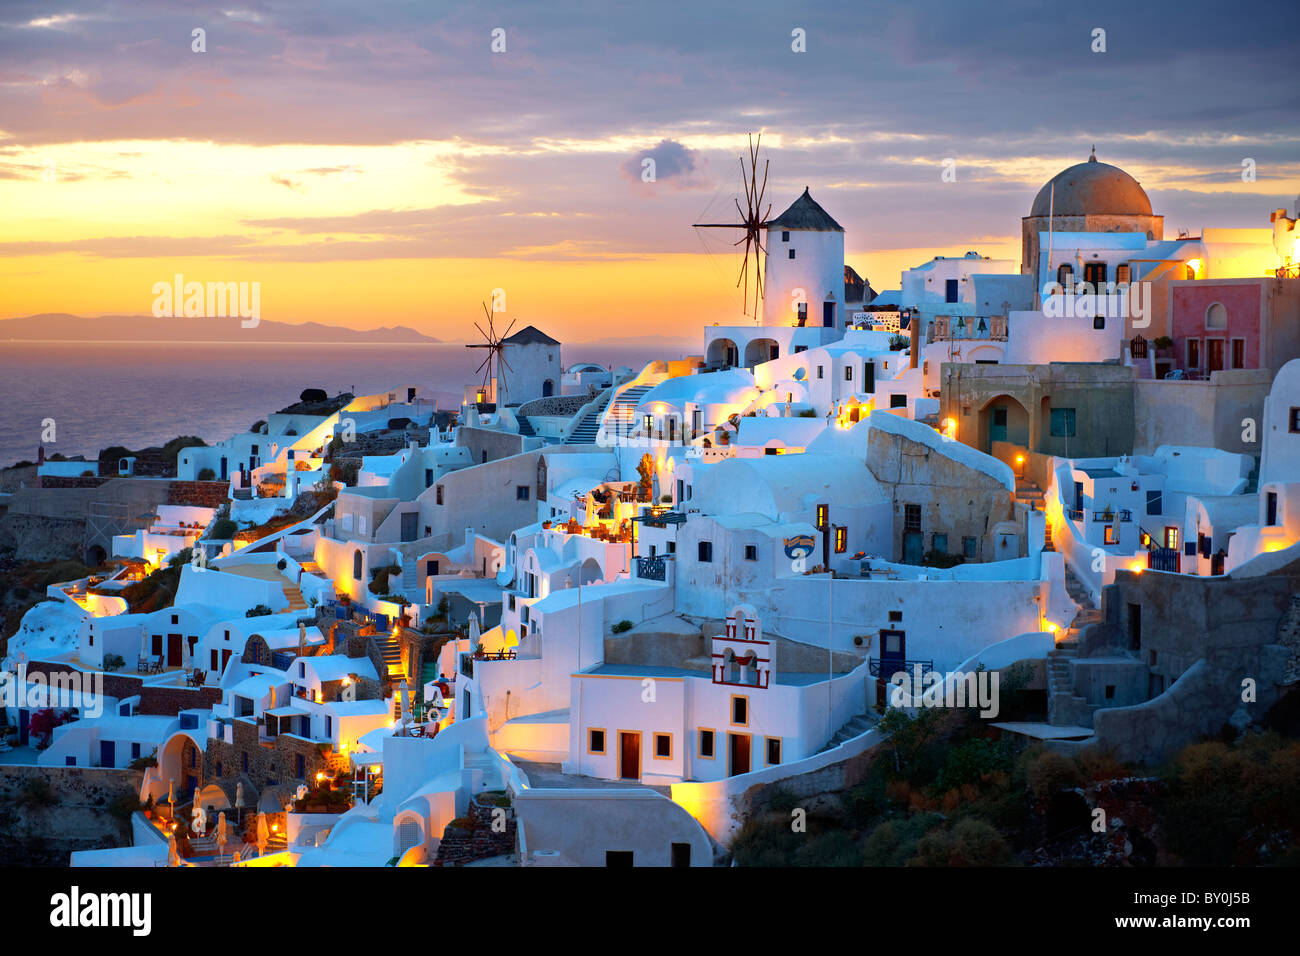 Oia ( Ia ) Santorini - Windmills and town at sunset, Greek Cyclades islands - Photos, pictures and images Stock Photo